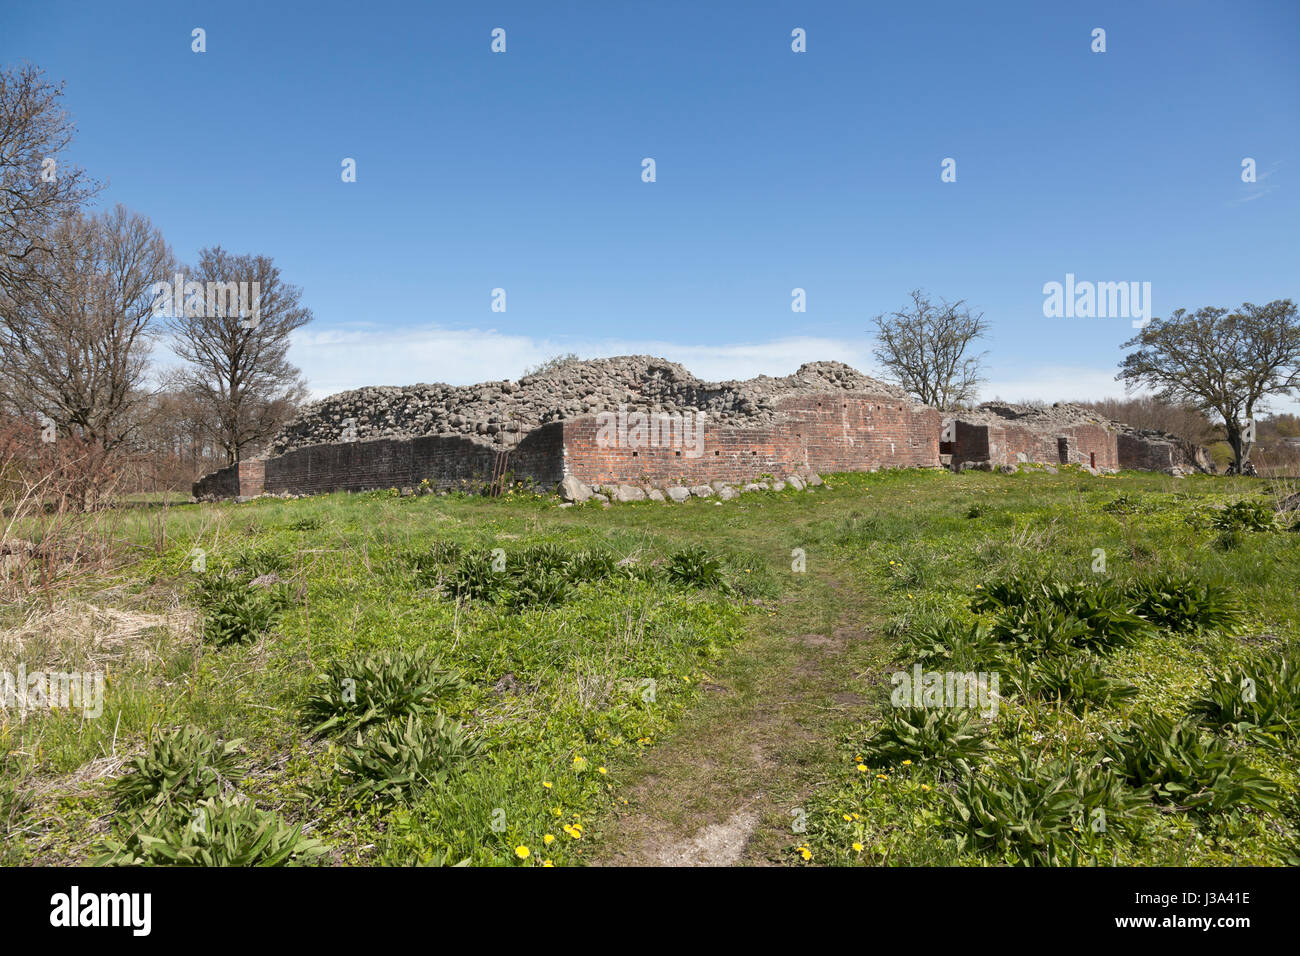 The Gurre Castle Ruin, a Royal castle from the 12th century in North Zealand near Elsinore, Helsingør, in Denmark - Stock Image